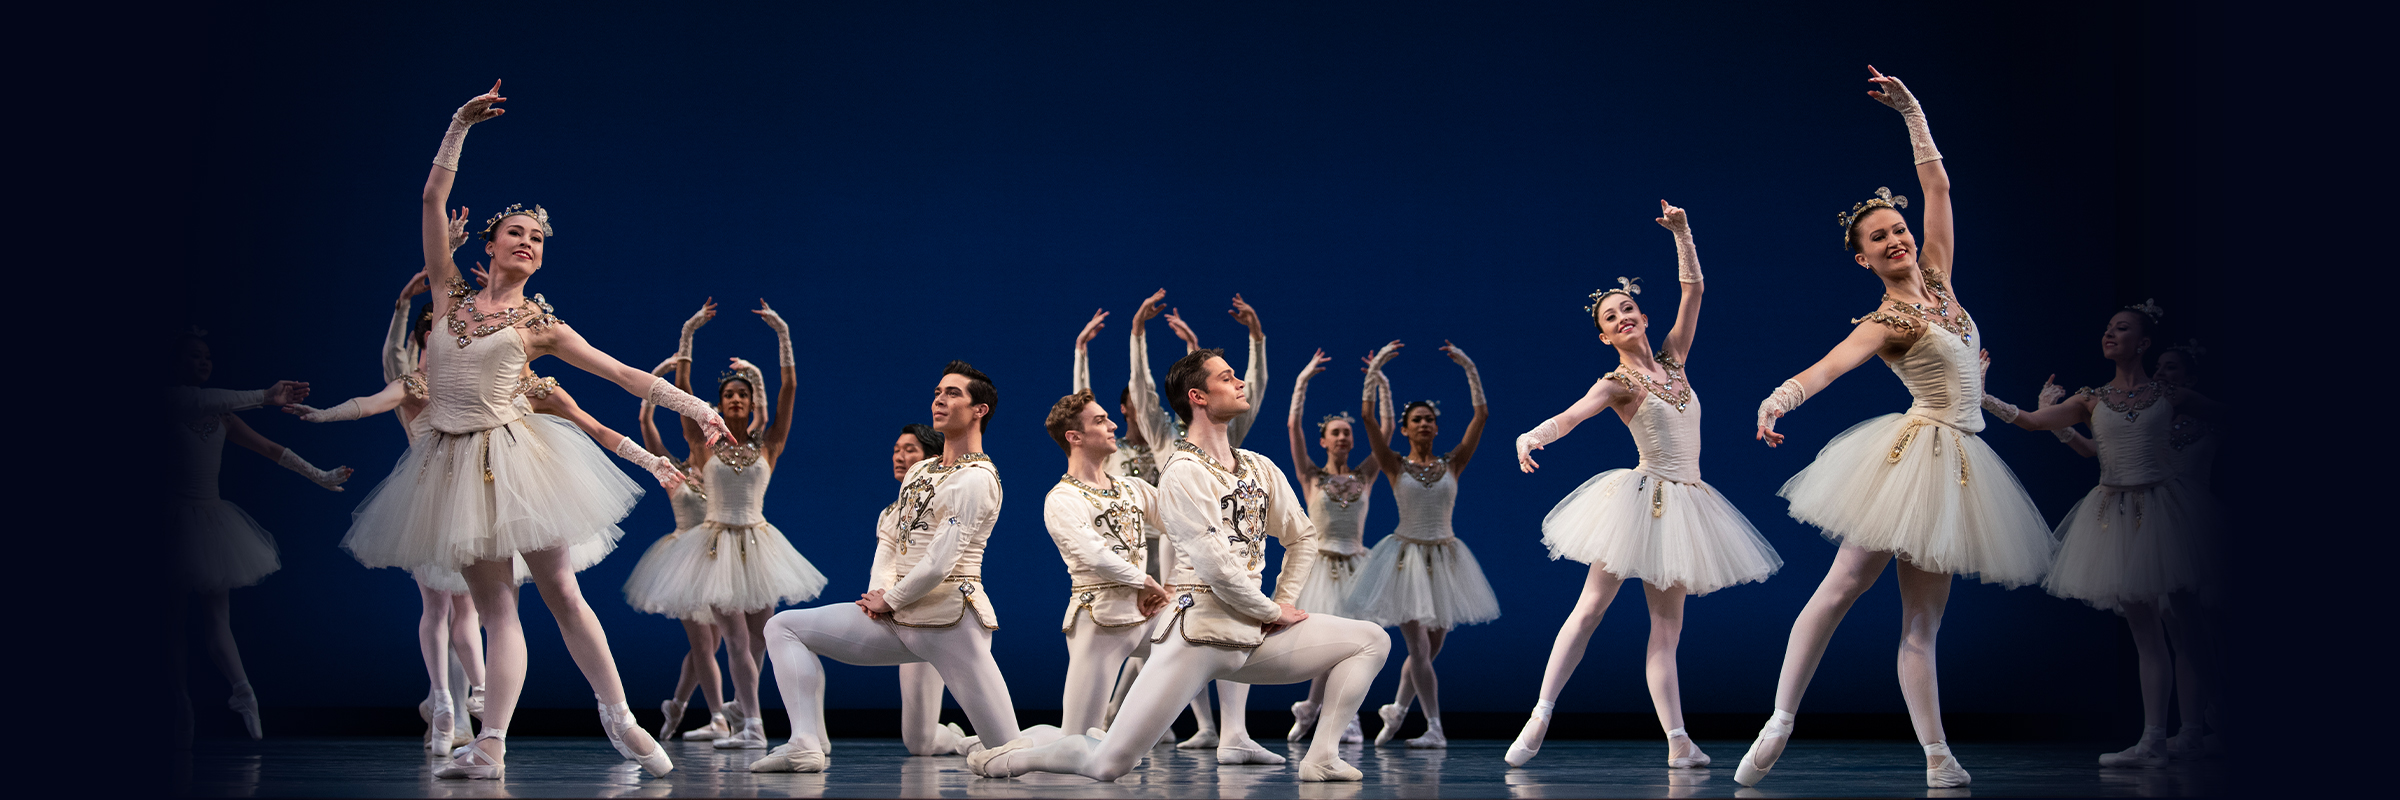 San Francisco Ballet in the finale from Balanchine's Diamonds // Choreography by George Balanchine © The Balanchine Trust; Photo © Erik Tomasson